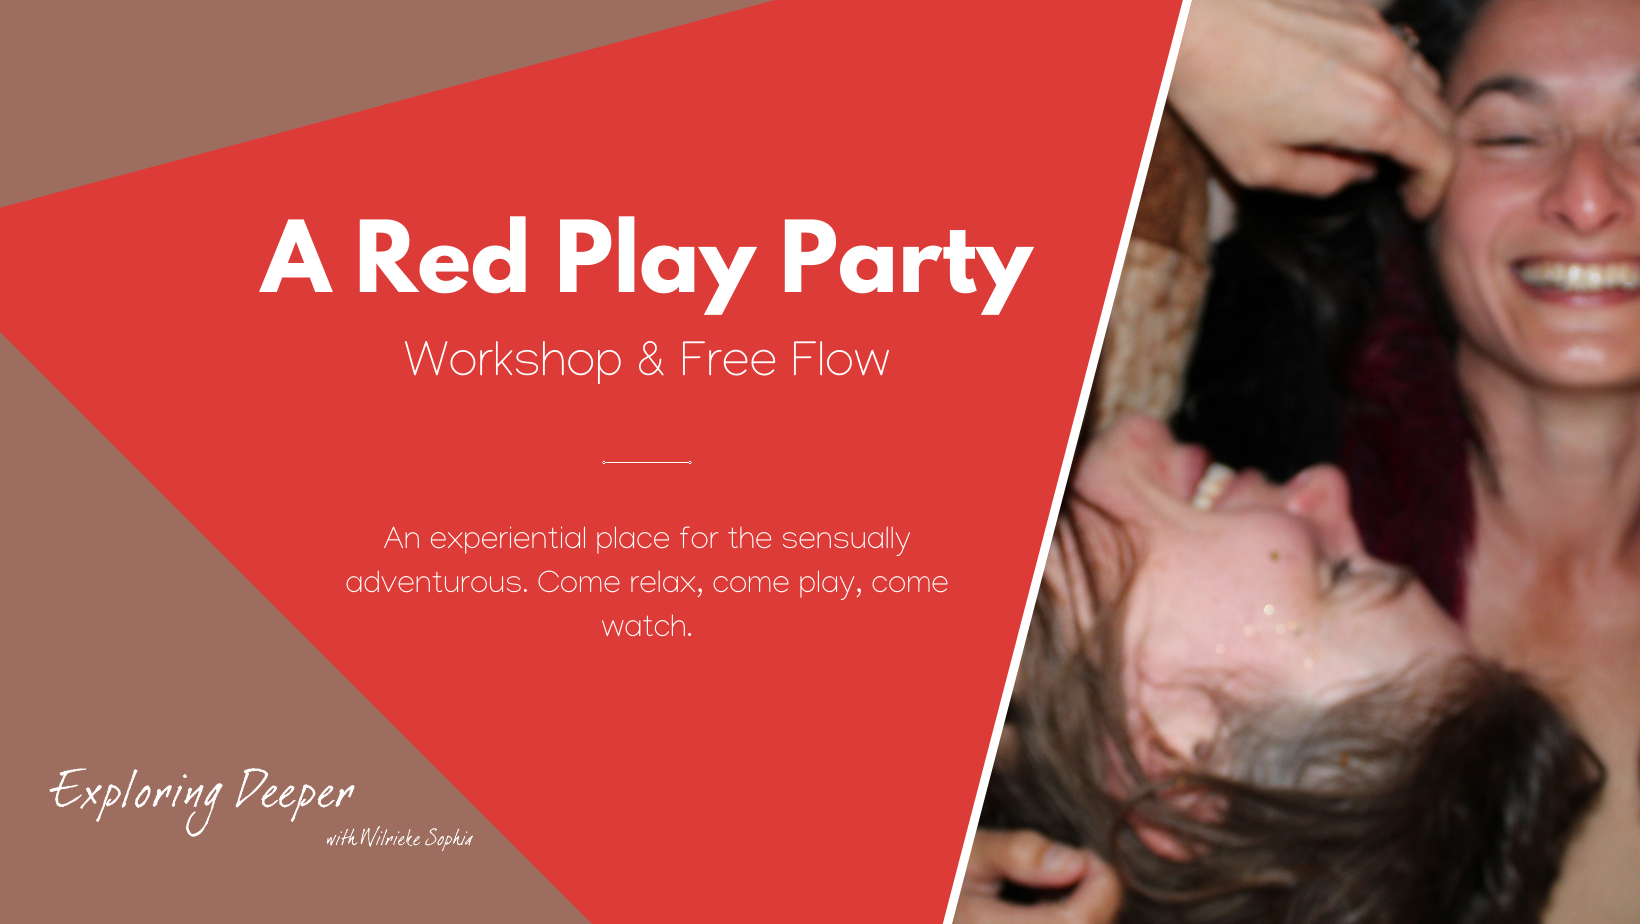 Red Play Party